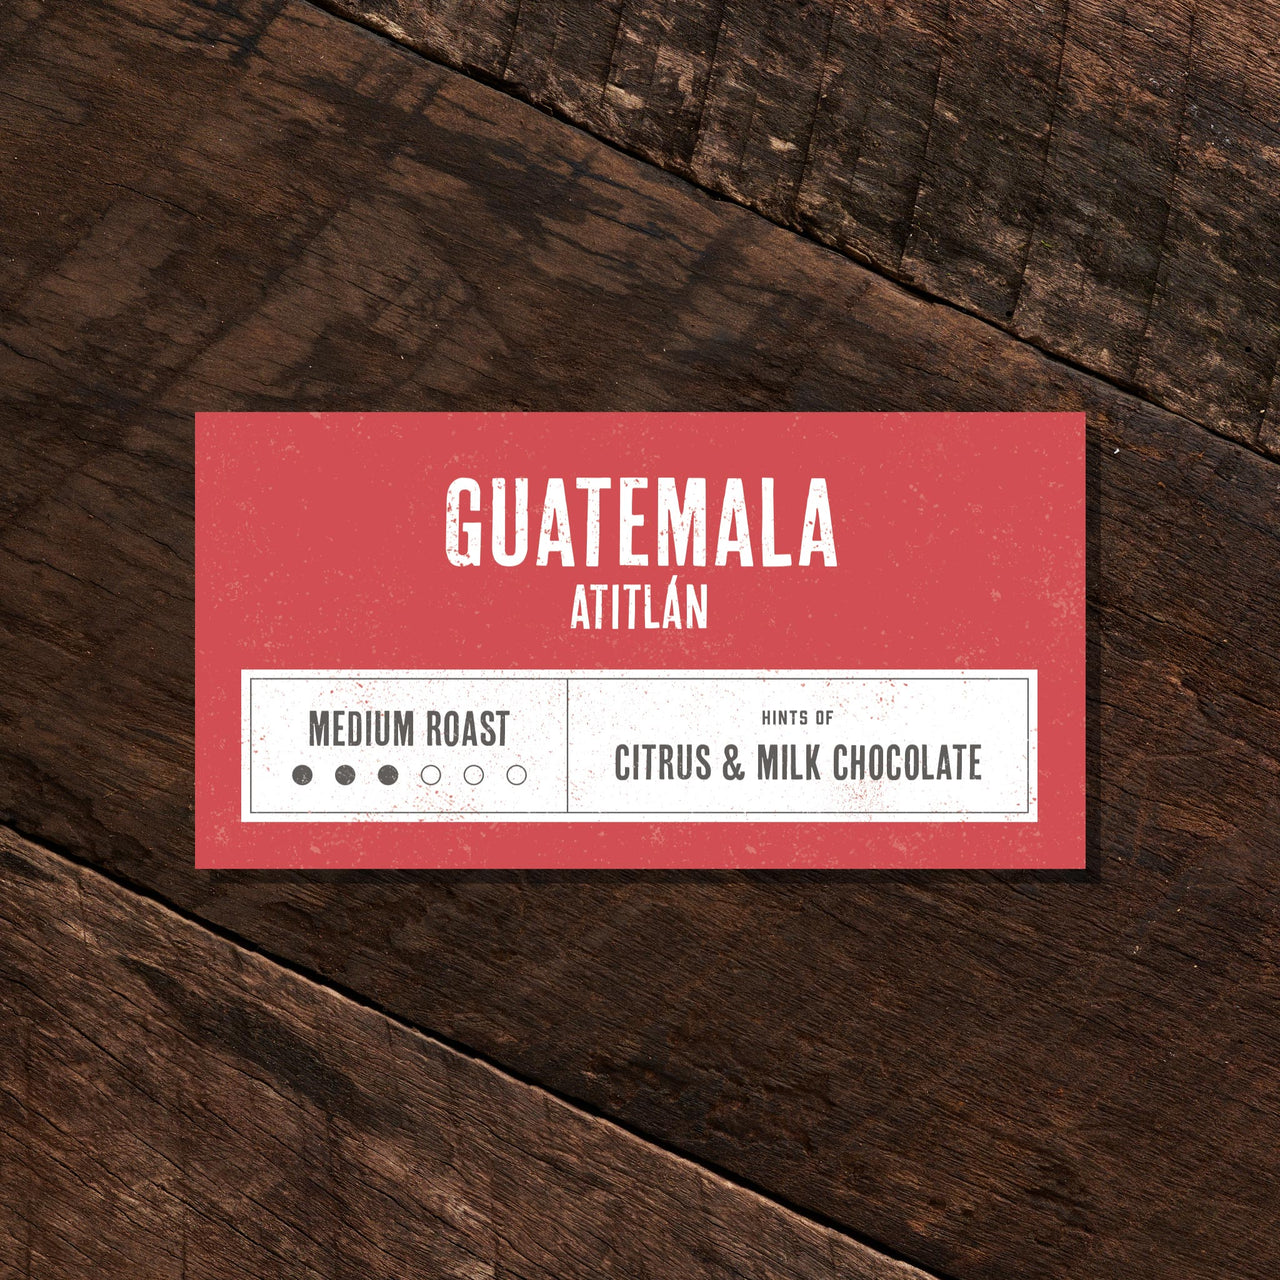 Guatemala Atitlan - Medium Roast